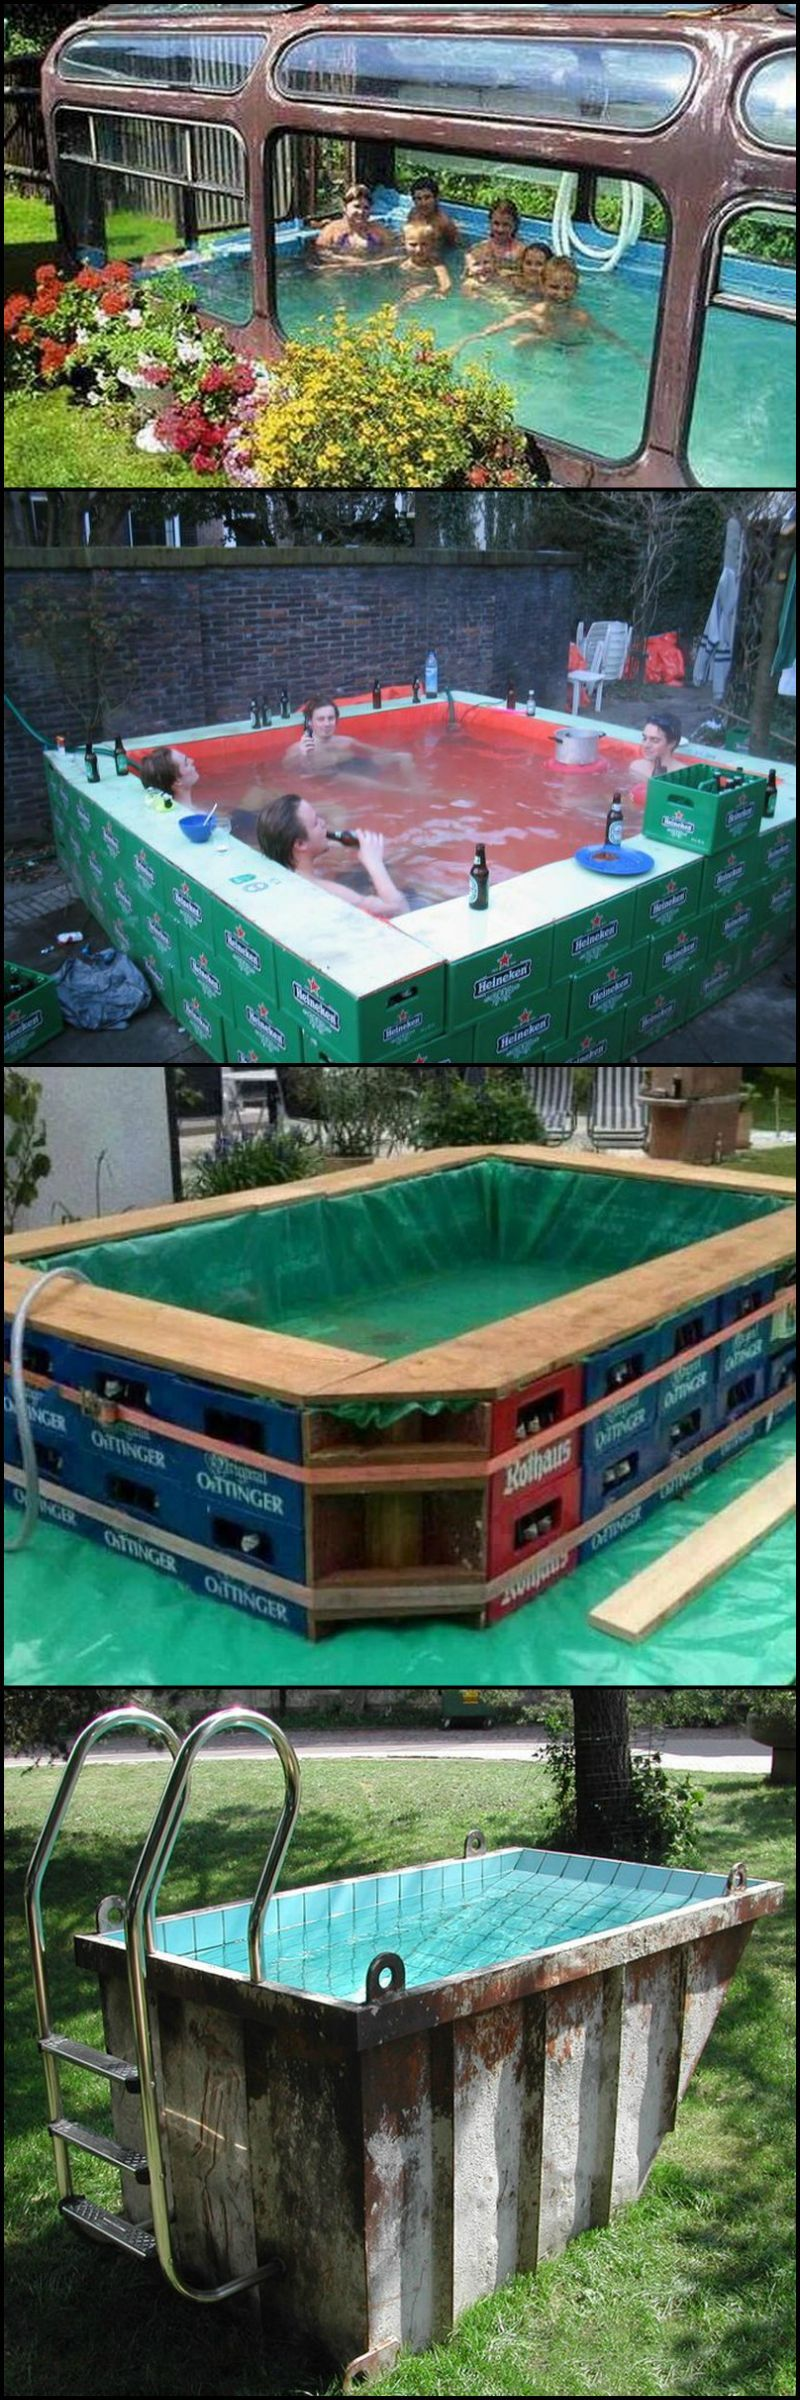 Makeshift Swimming Pools | OUR NEW HOME REMODEL CONCEPTS | Diy pool ...